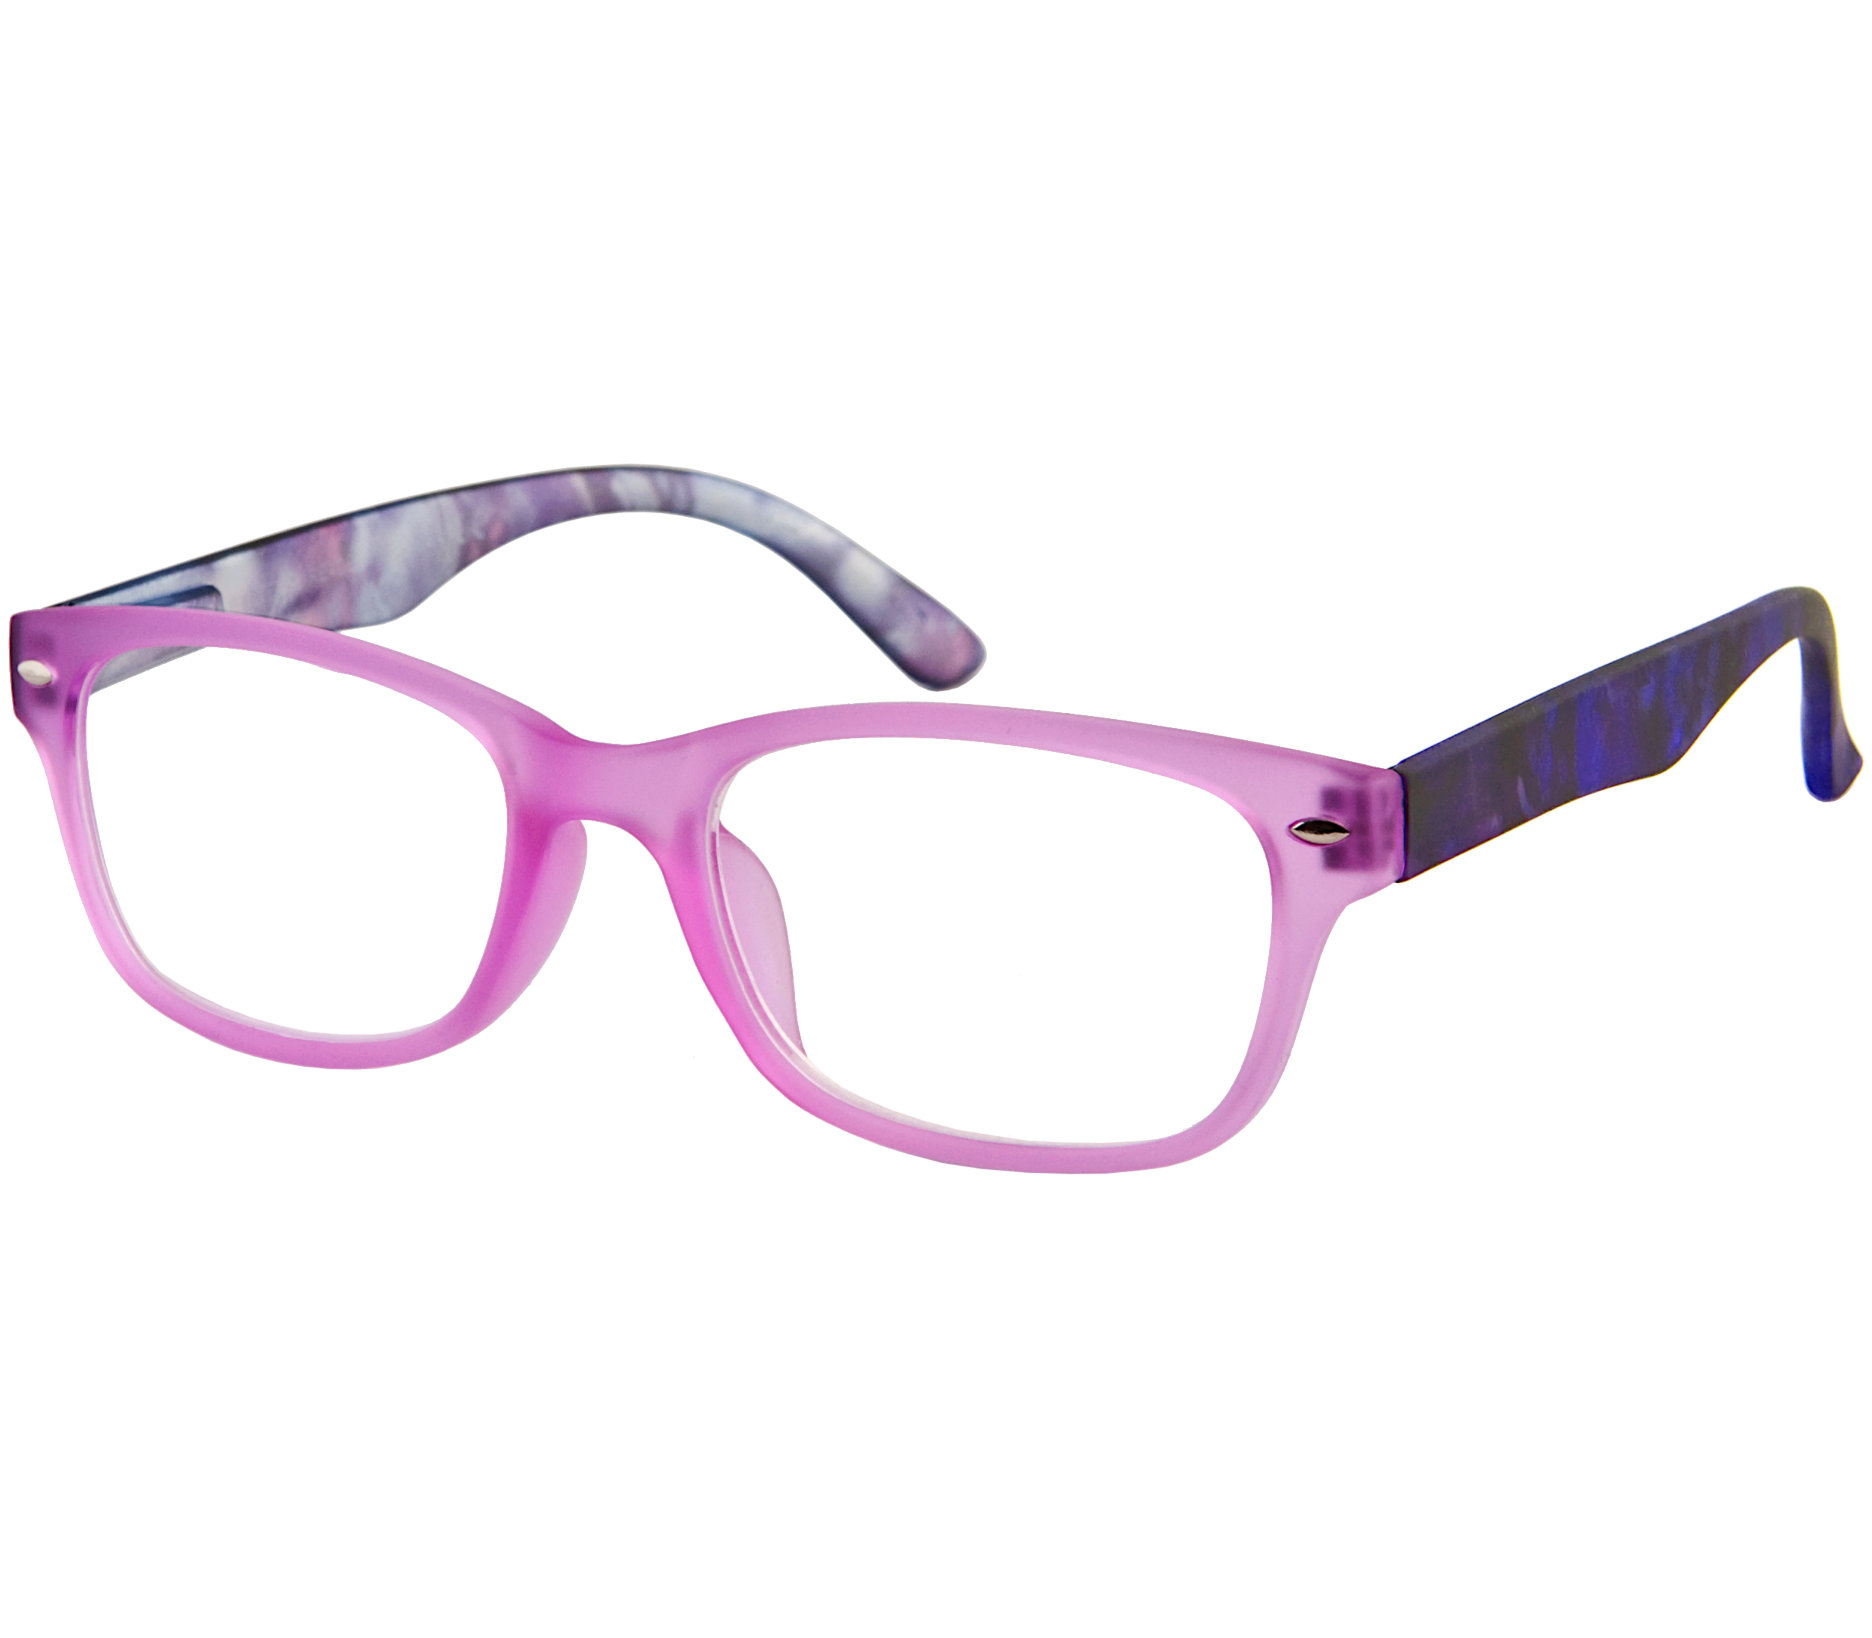 Main Image (Angle) - Freedom (Pink) Fashion Reading Glasses